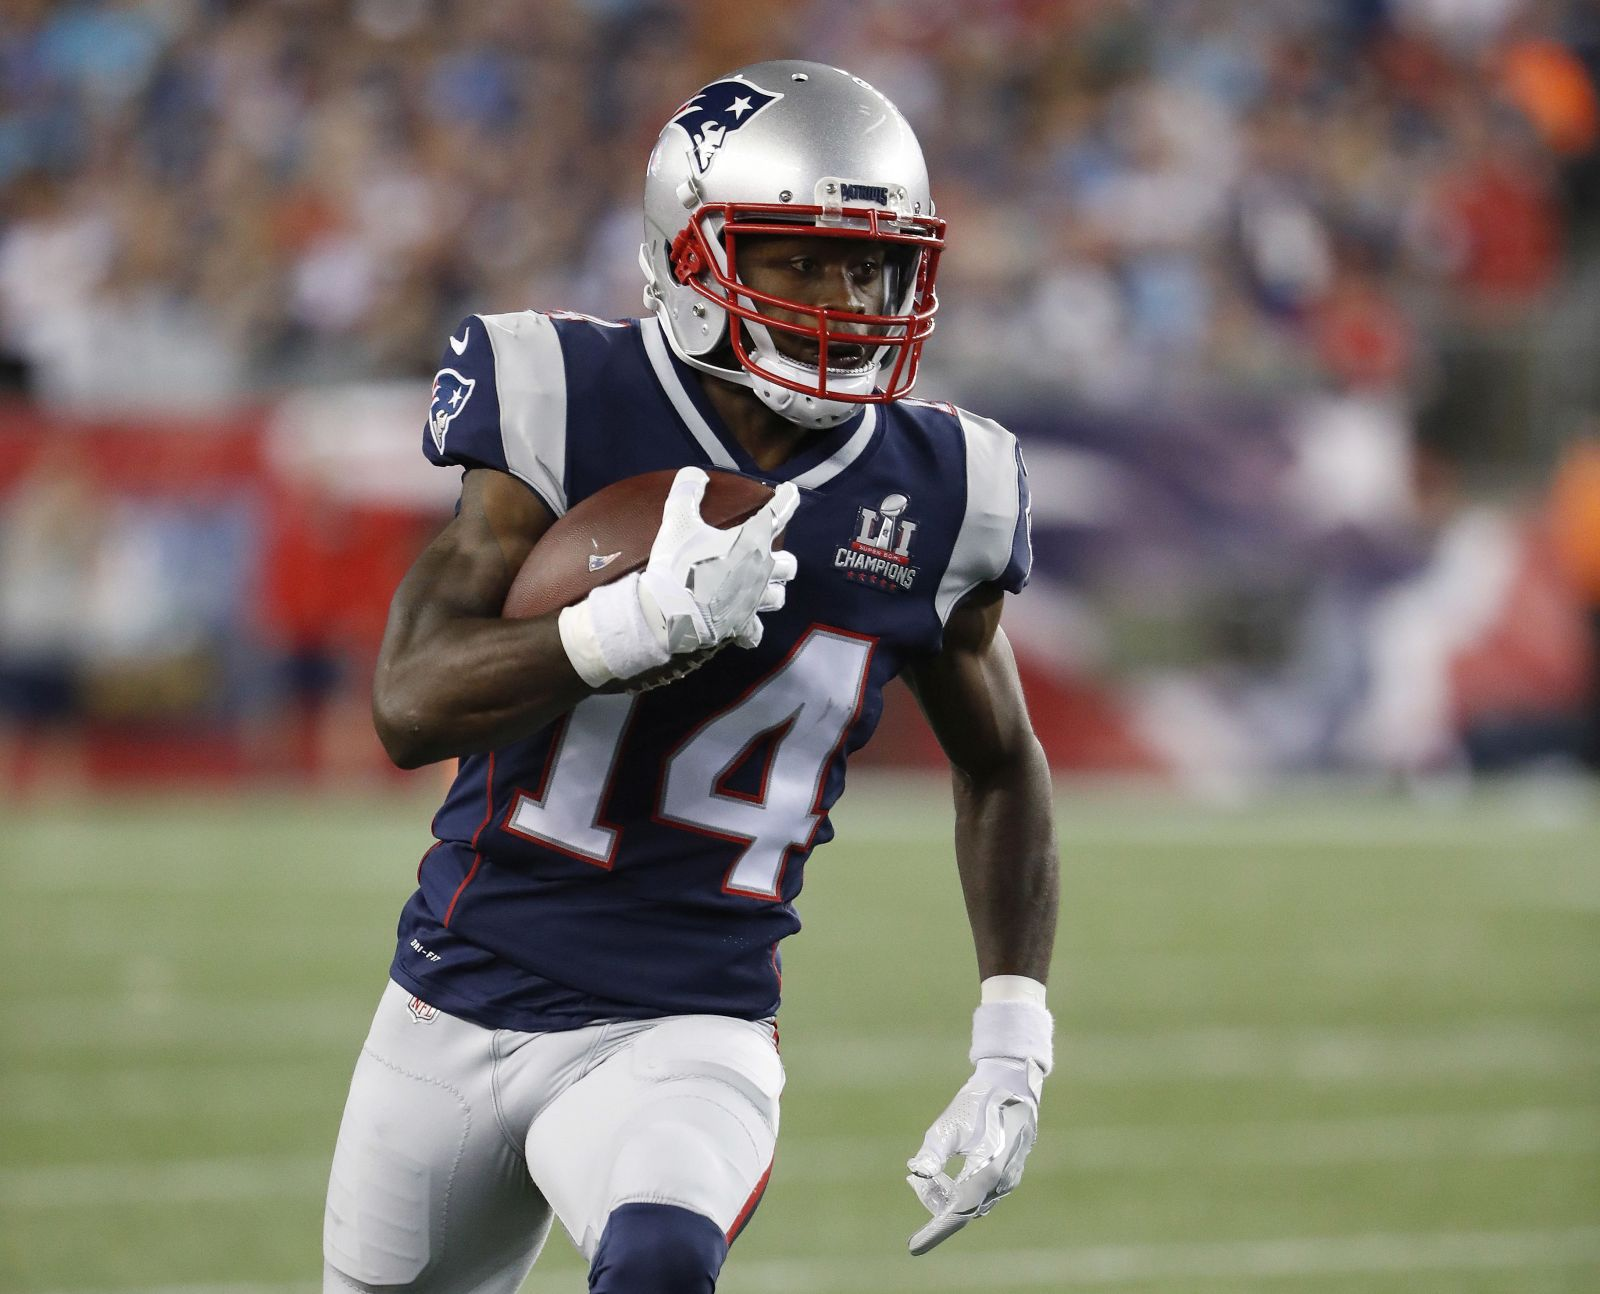 Watch Tom Brady's game-winning touchdown pass to Brandin Cooks